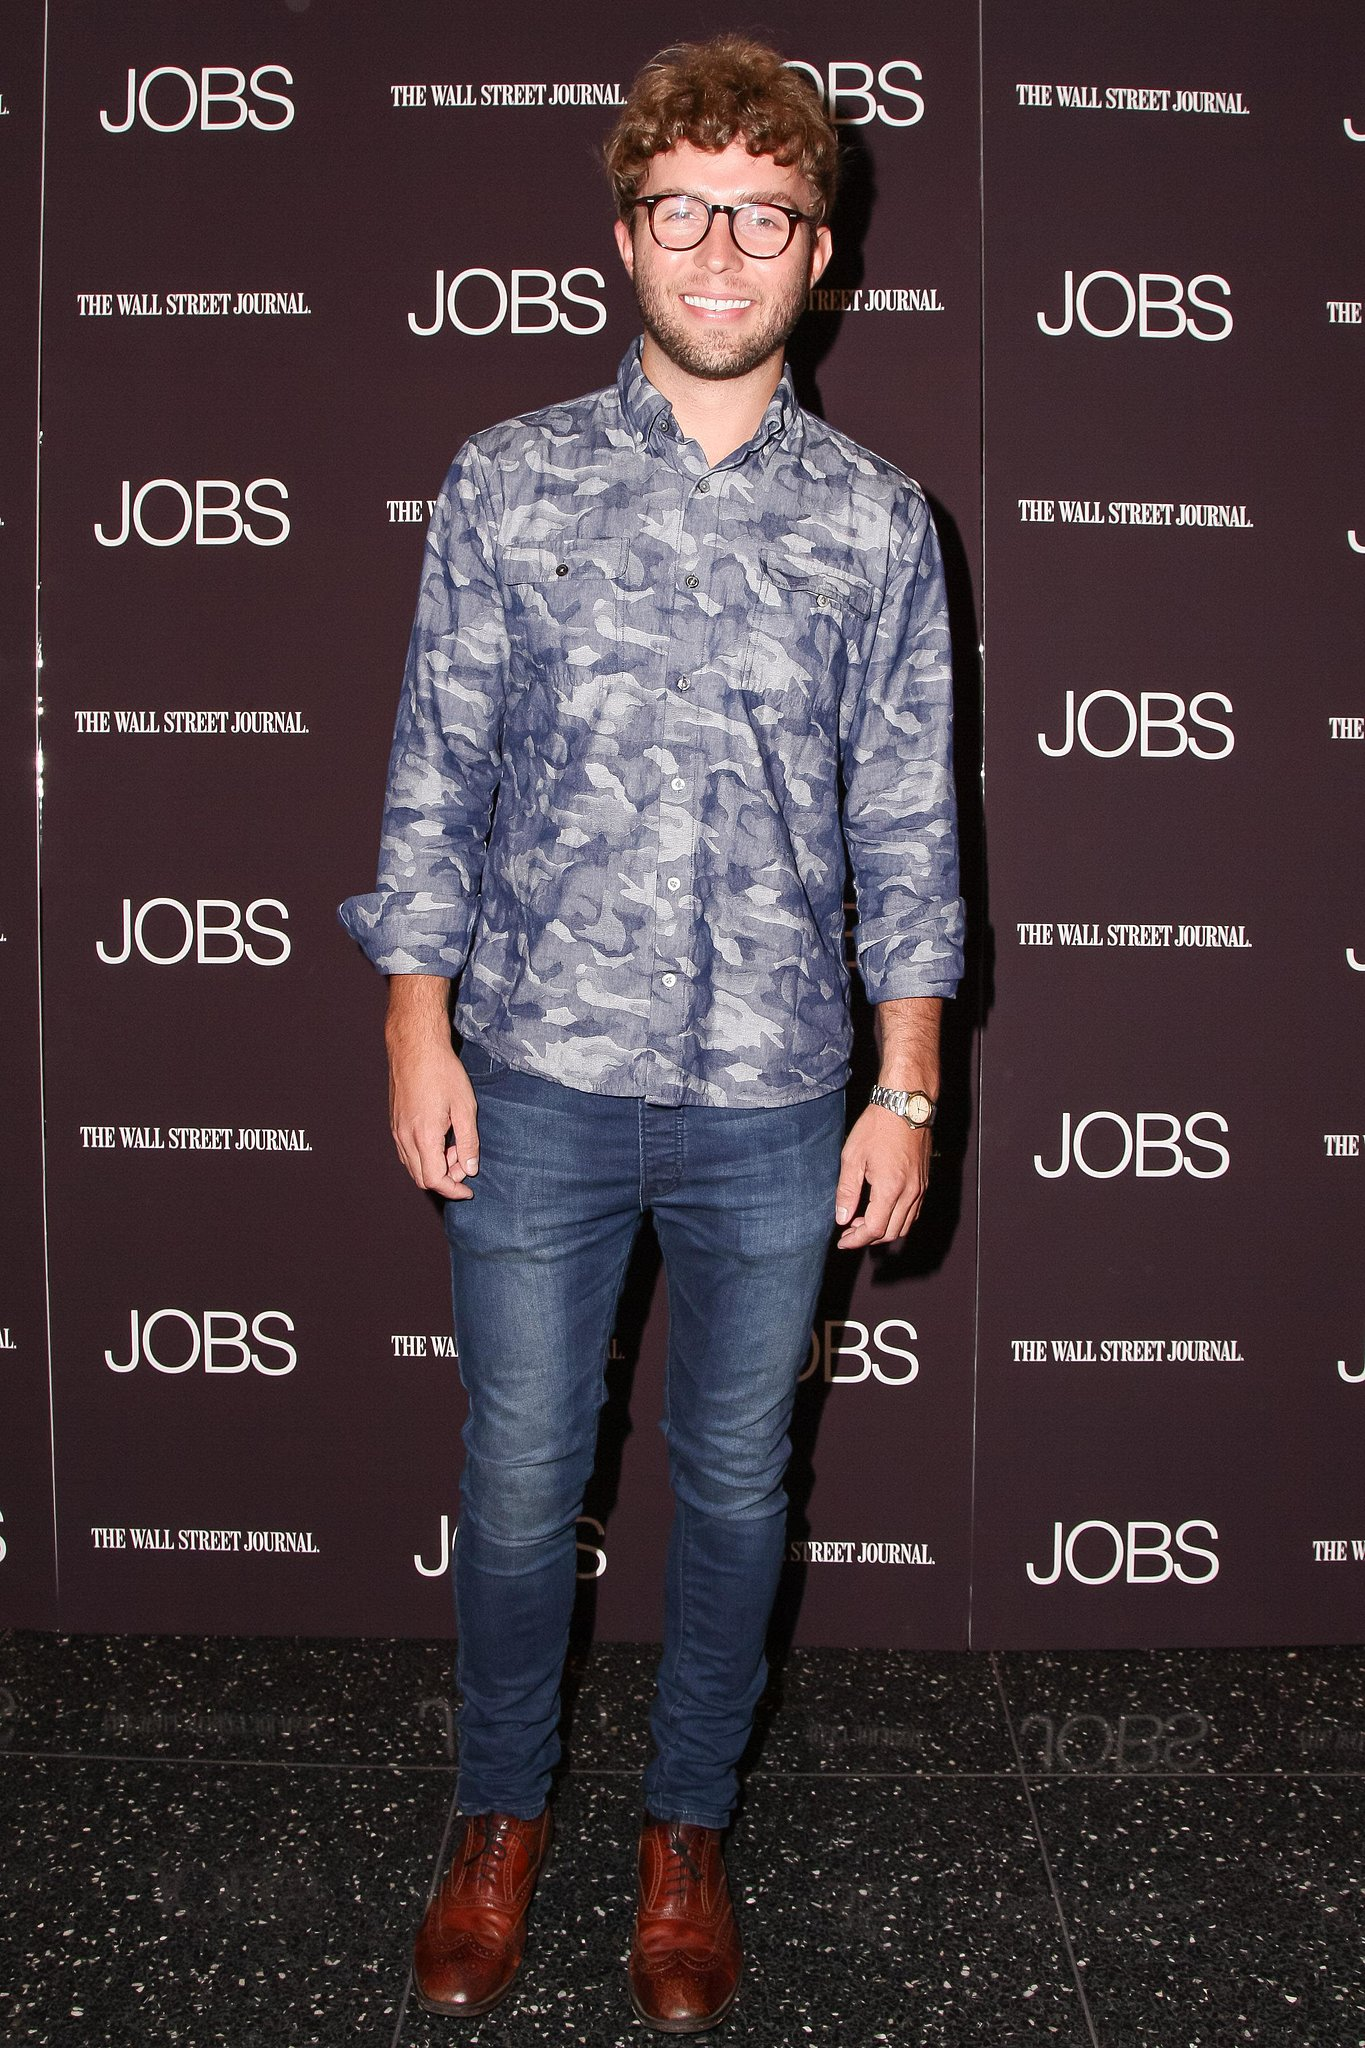 Timo Weiland hit the black carpet for the MoMA Jobs screening in denim.